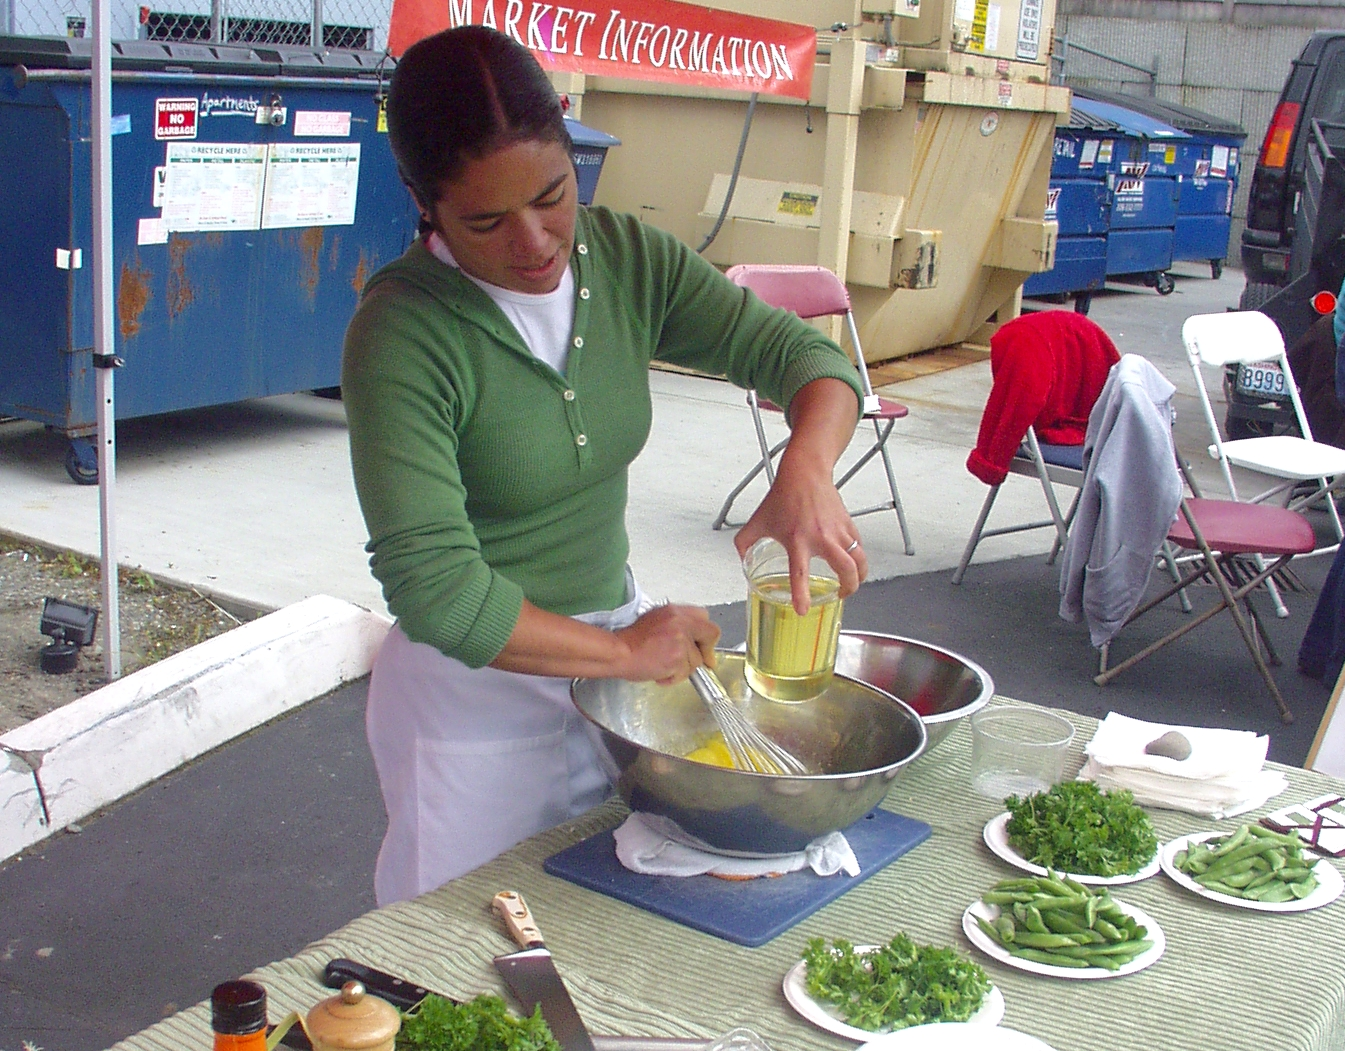 Chef Maria Hines of Tilth Restaurant performing a cooking demonstration at Wallingford Farmers Market in 2008. Photo copyright 2008 by Zachary D. Lyons.